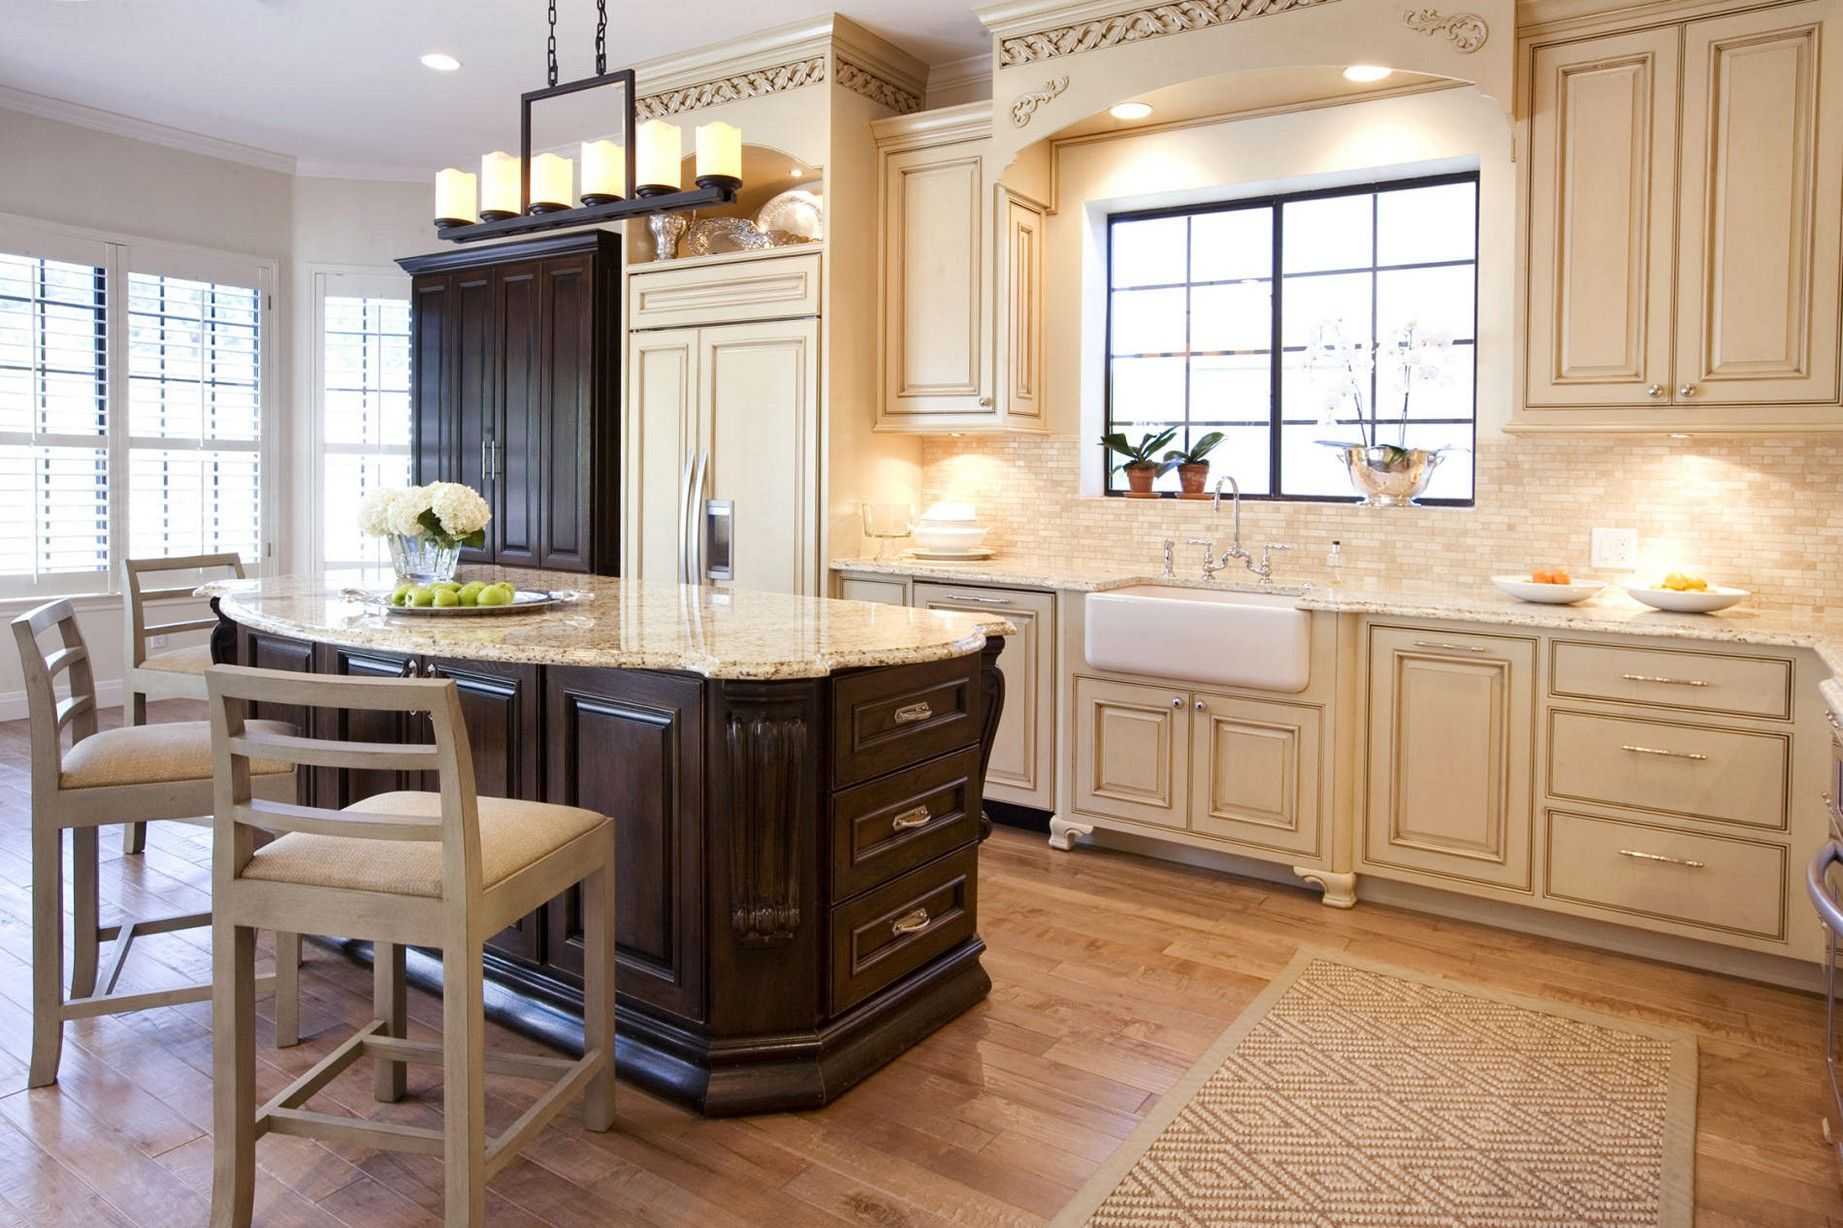 Pin By Riley Gardner On Bv Window Treatments French Country Kitchen Cabinets French Country Kitchens Country Kitchen Cabinets